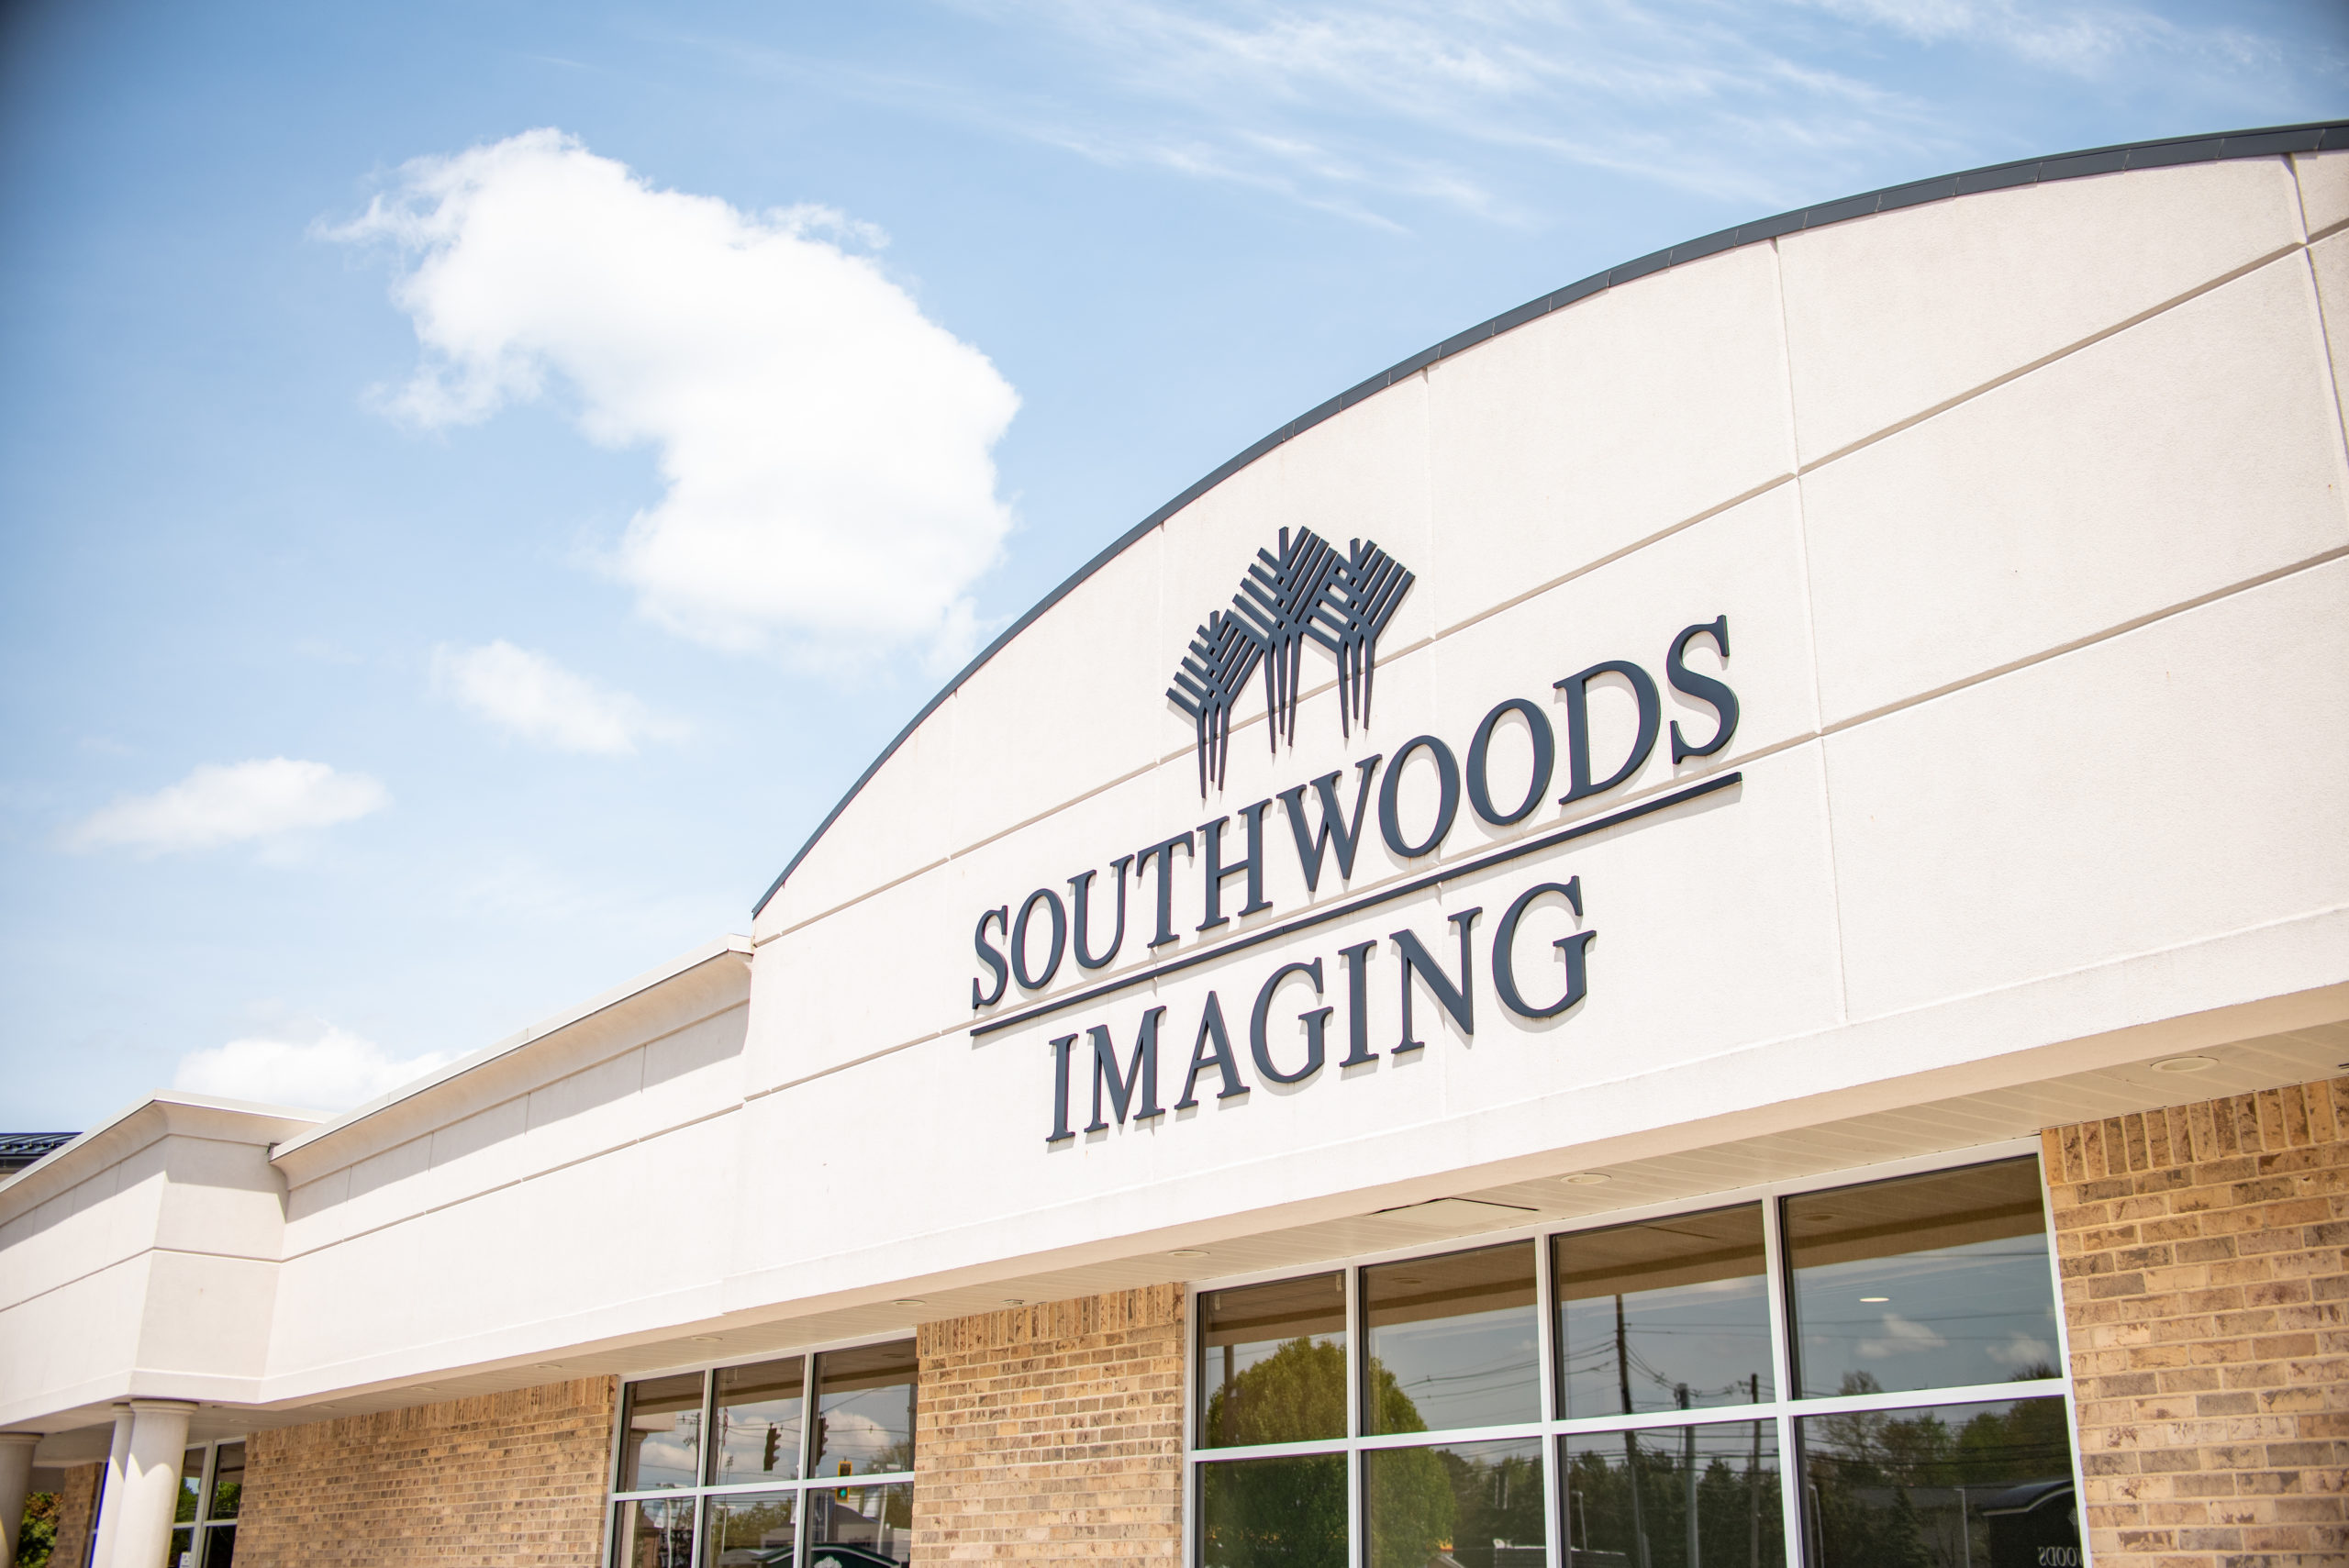 Southwoods Imaging logo on the imaging building